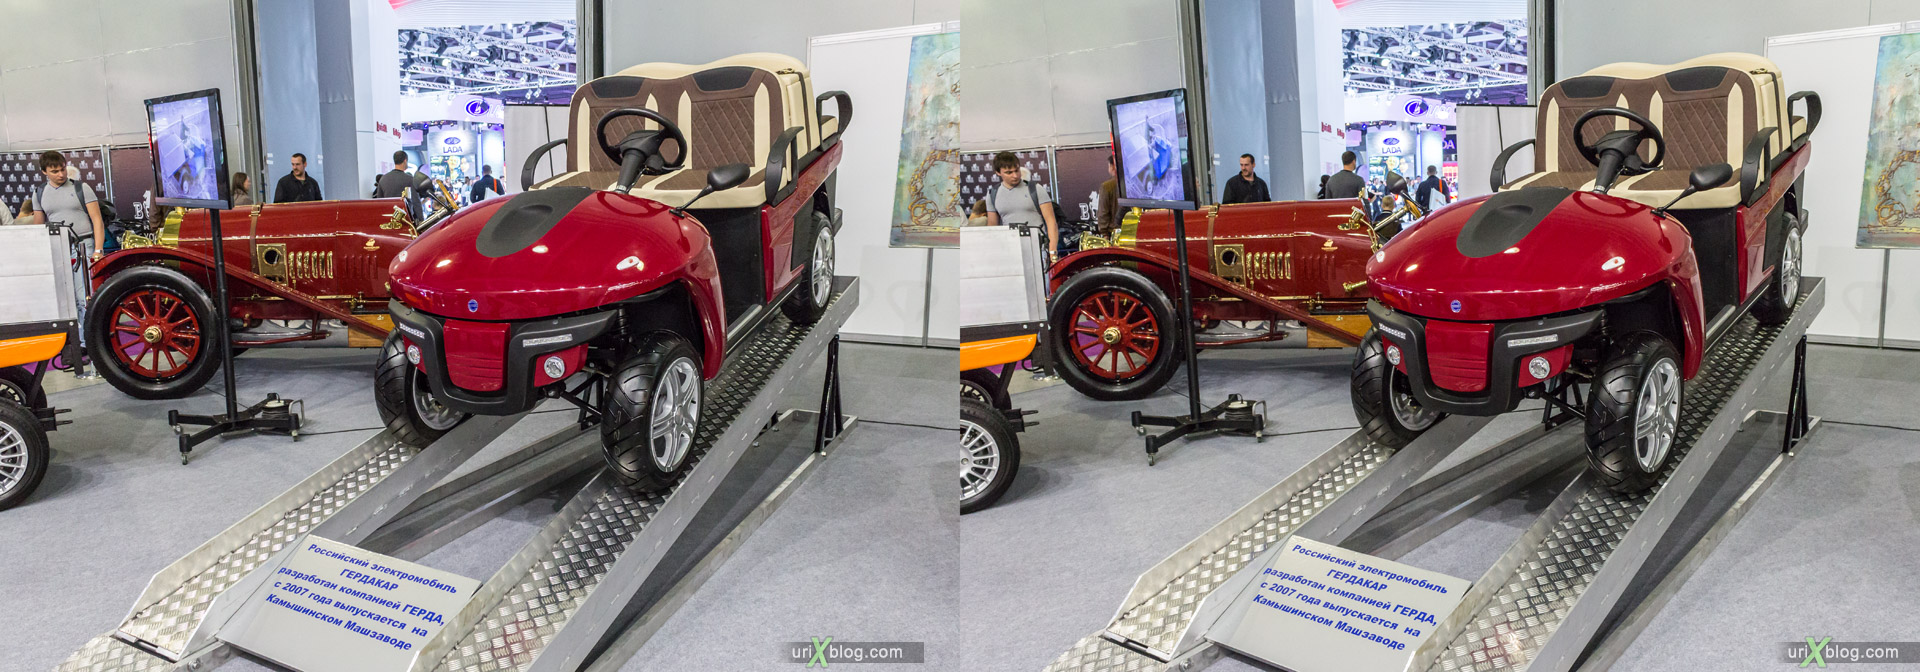 2014, Moscow International Automobile Salon, MIAS, Crocus Expo, Moscow, Russia, augest, 3D, stereo pair, cross-eyed, crossview, cross view stereo pair, stereoscopic